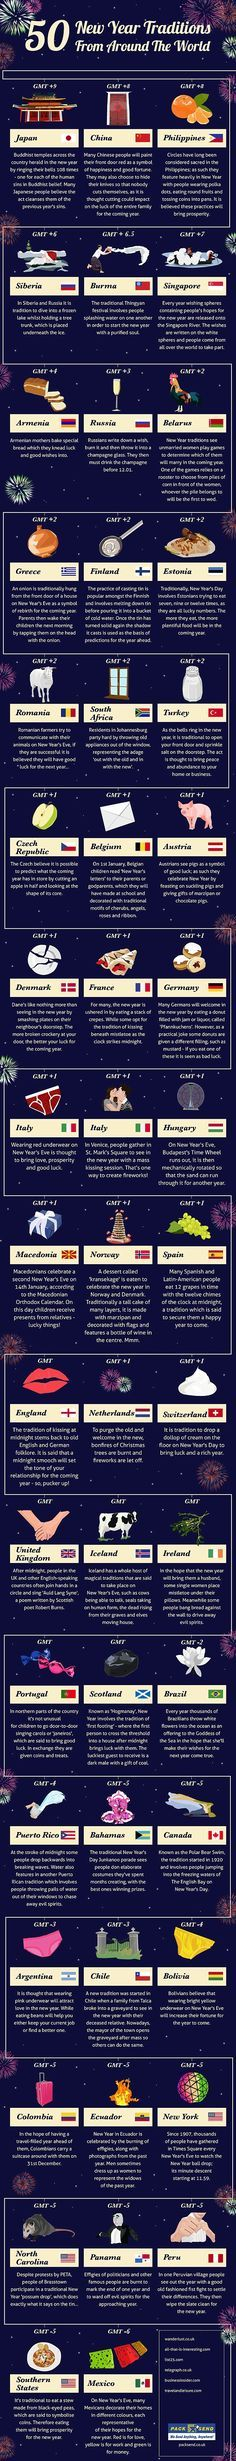 New years celebrations from around the world. Could be used as a ...